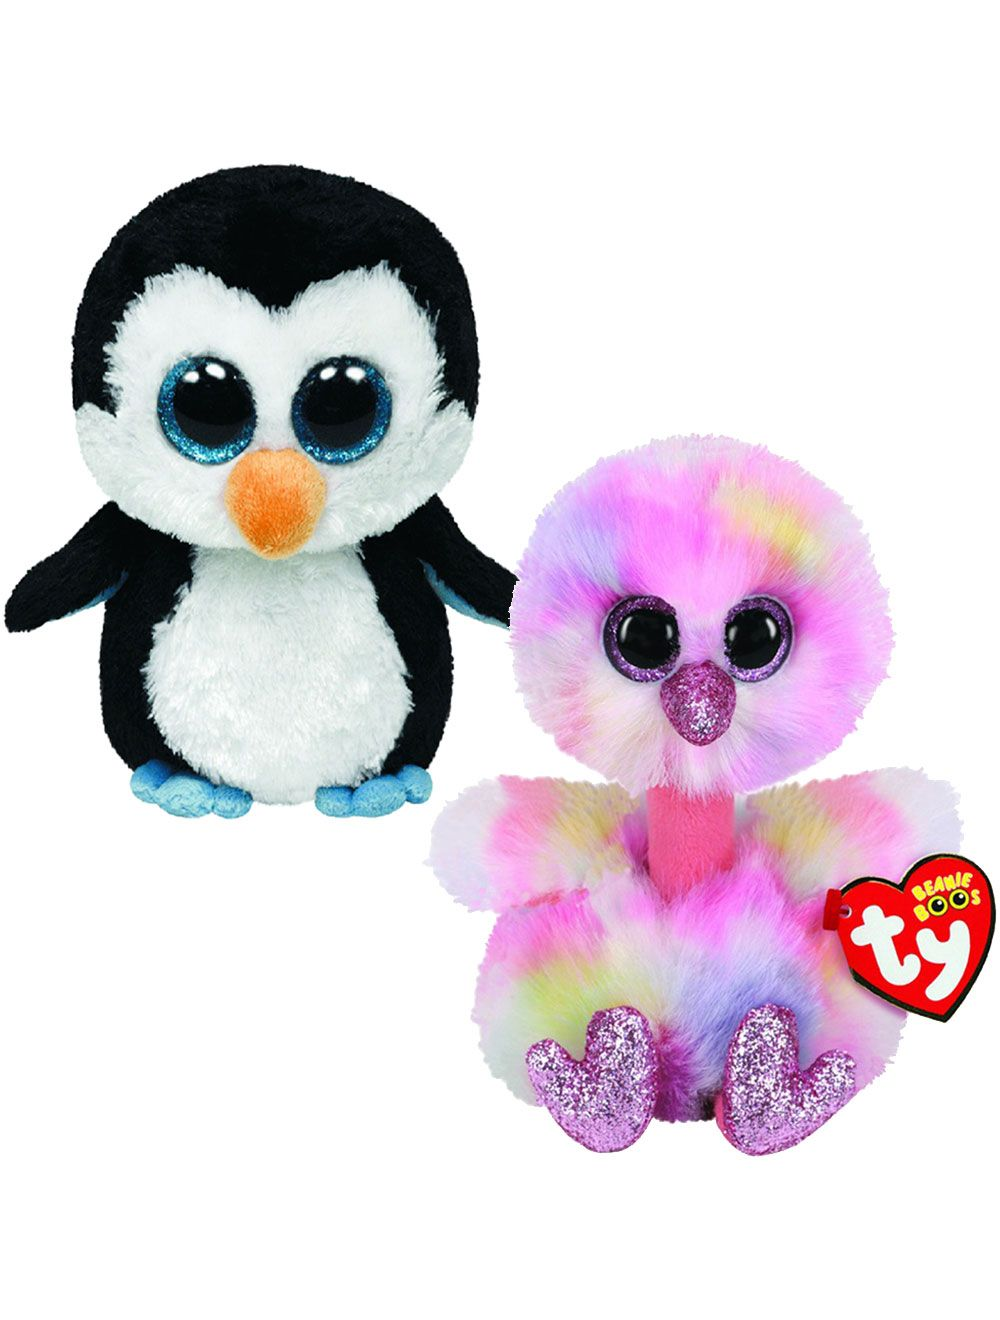 Ty Beanie Boos Regular Plush Value Pack Waddles Penguin Avery Ostrich